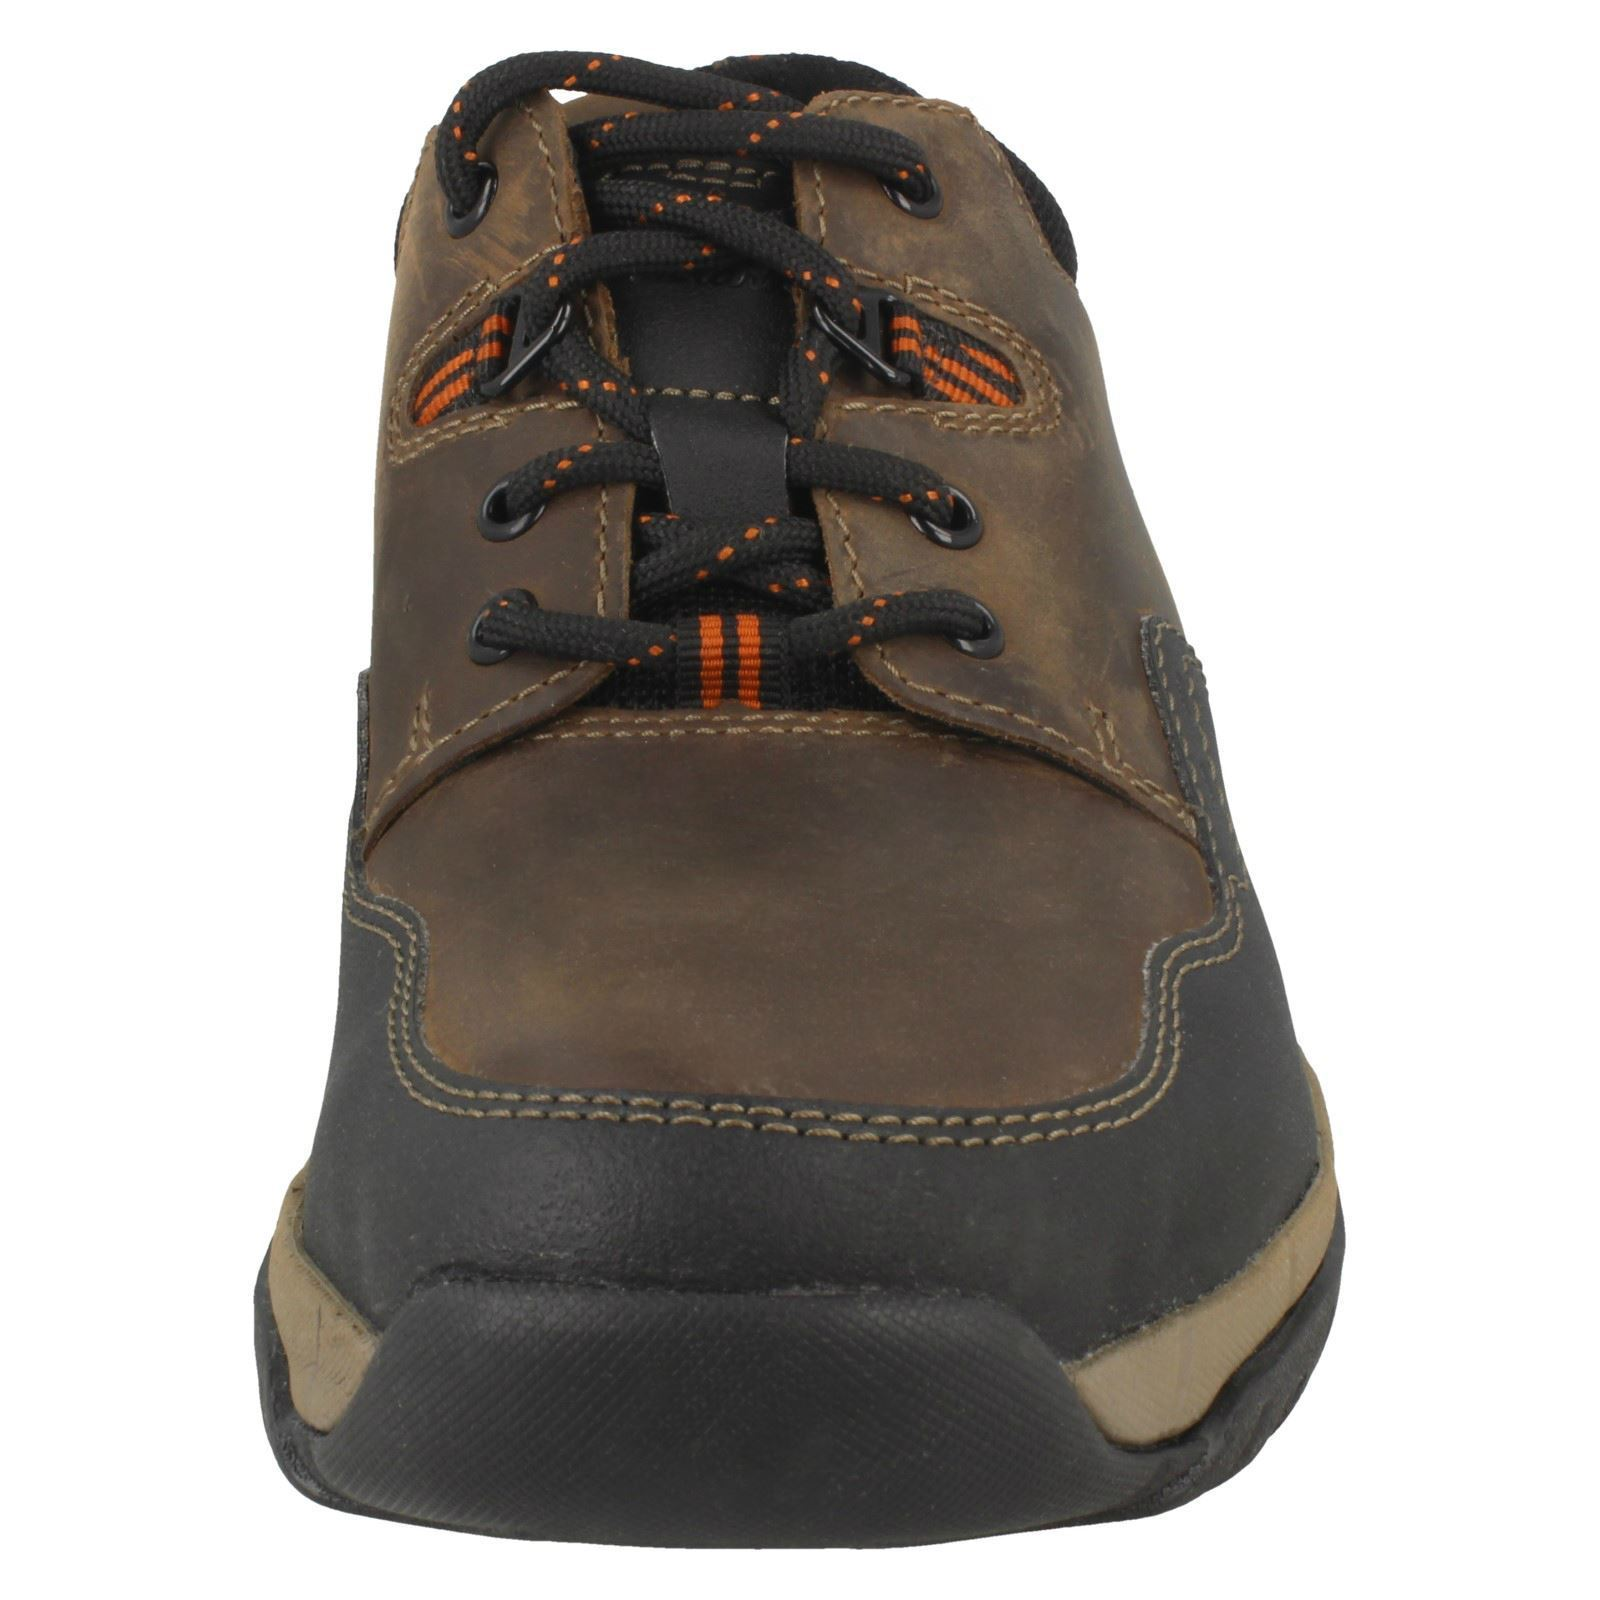 Herren Clarks Waterproof Casual Schuhes Lace Up Schuhes Casual Label - Walbeck Edge II e02f15